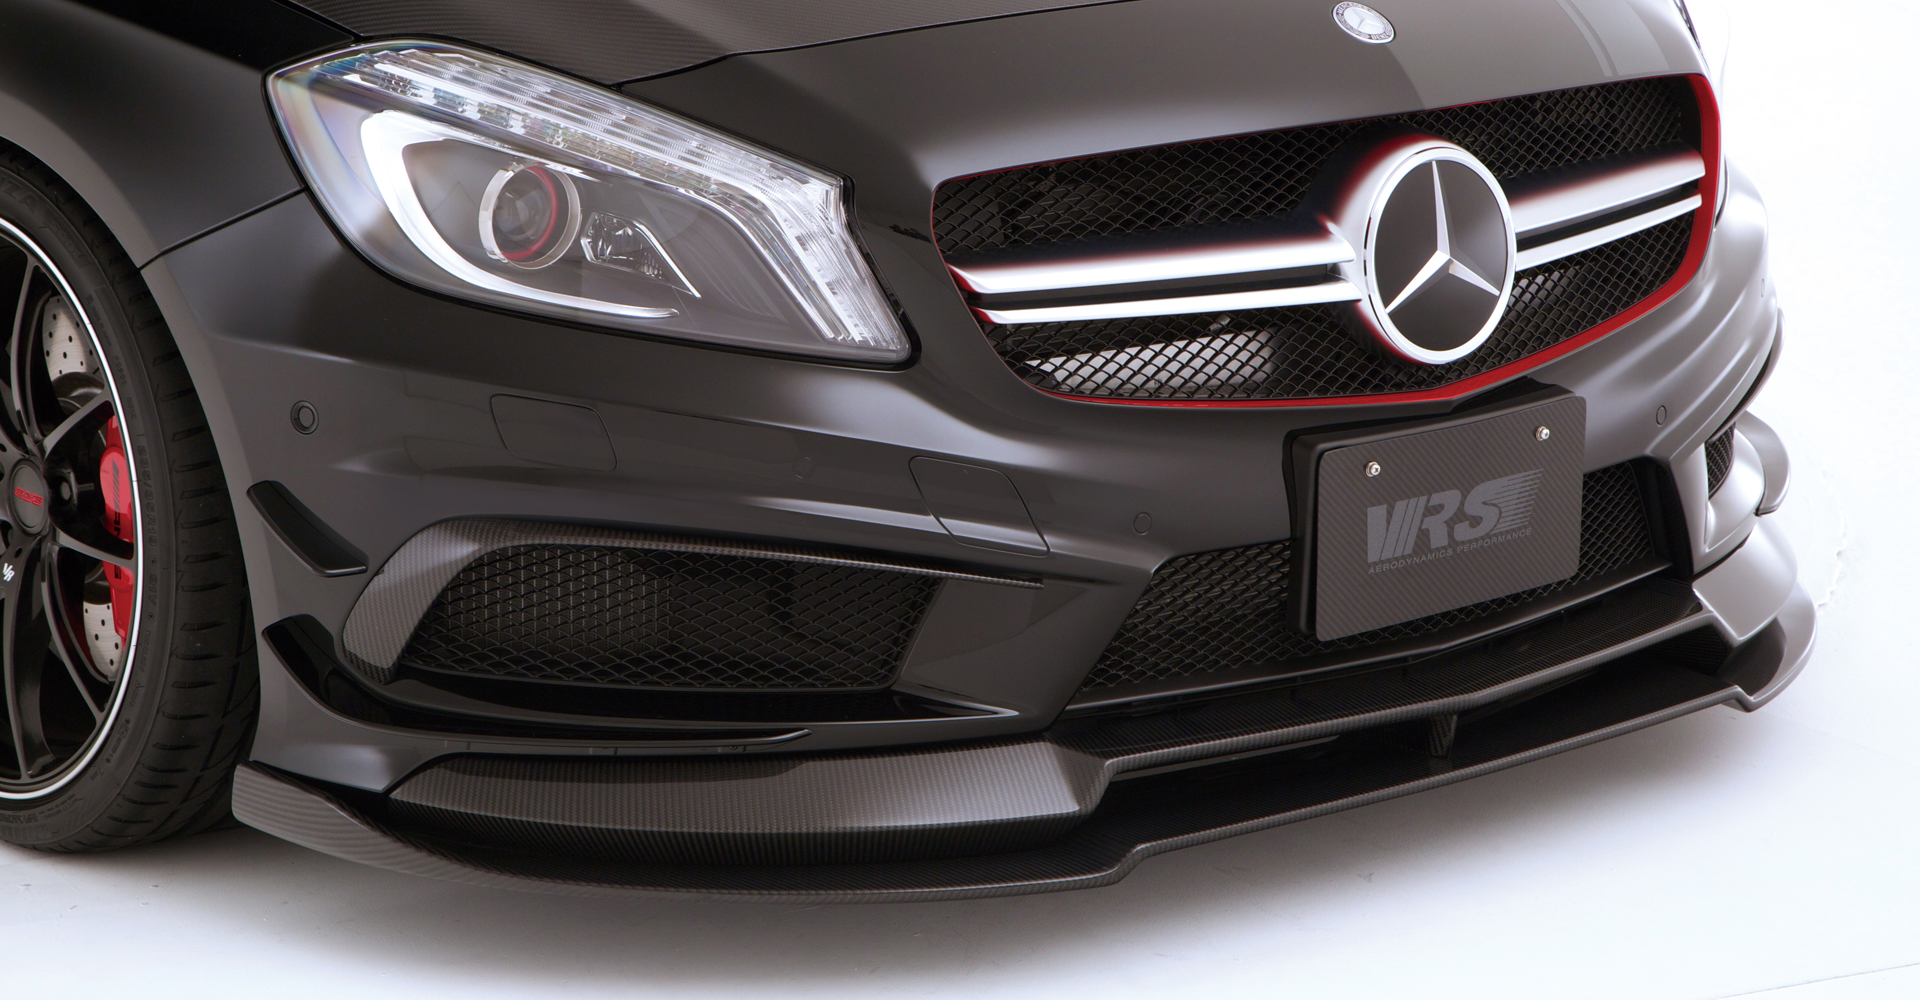 Vrs Mercedes A45 Amg Front Spoiler Extension Lip Set